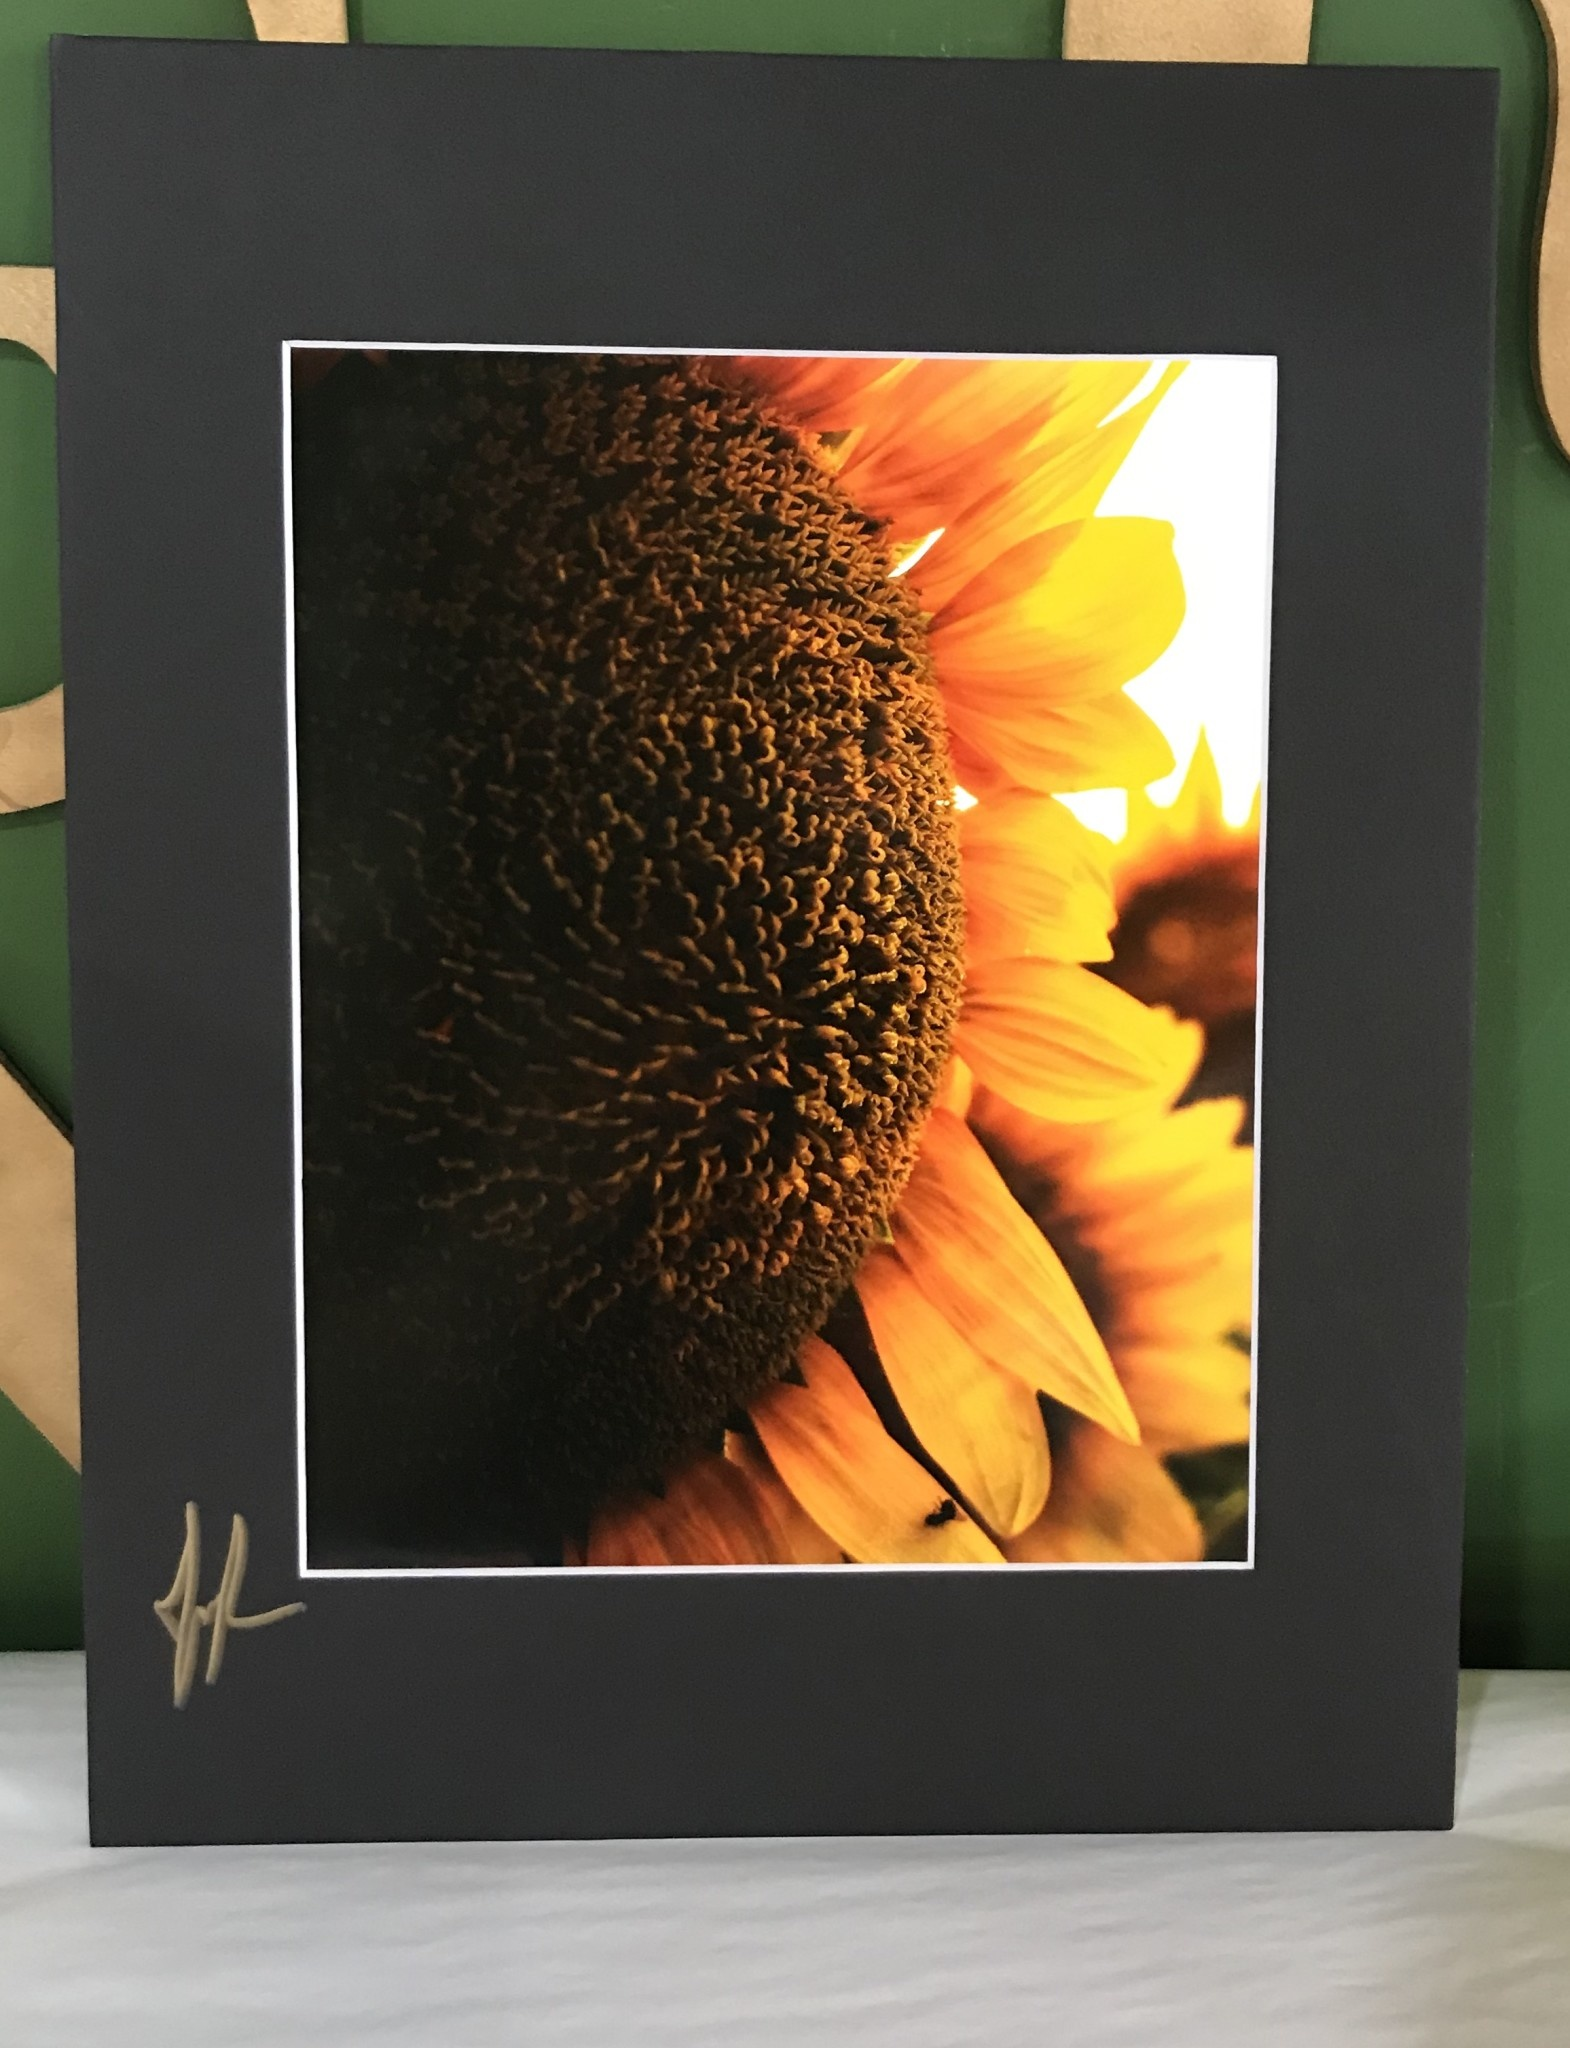 Drone-tography Drone-tography Up Close Sunflower 8x10 print